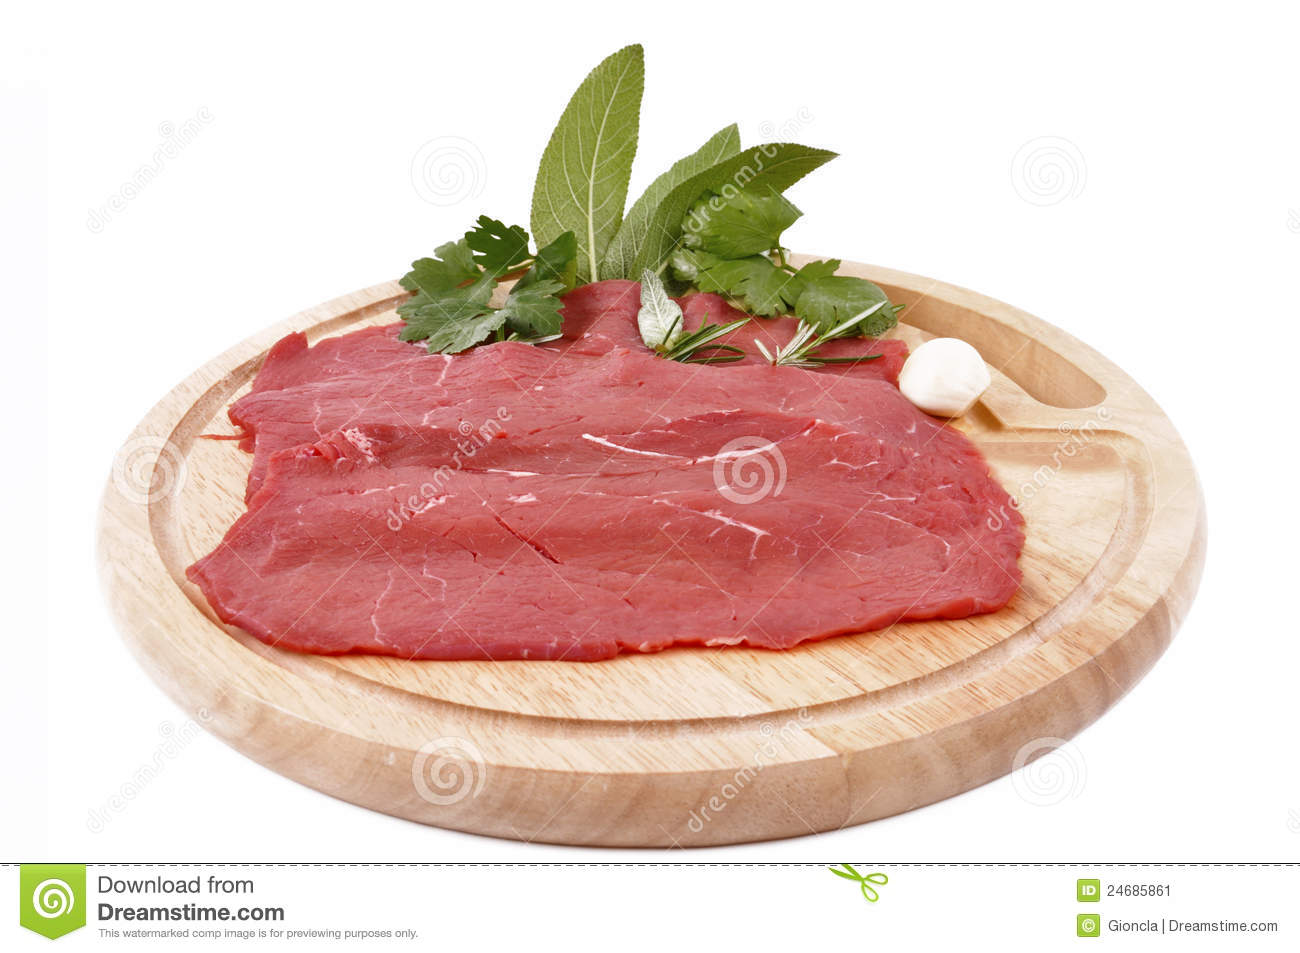 Carne Rossa Magra-lean Red Meat Stock Image - Image: 24685861